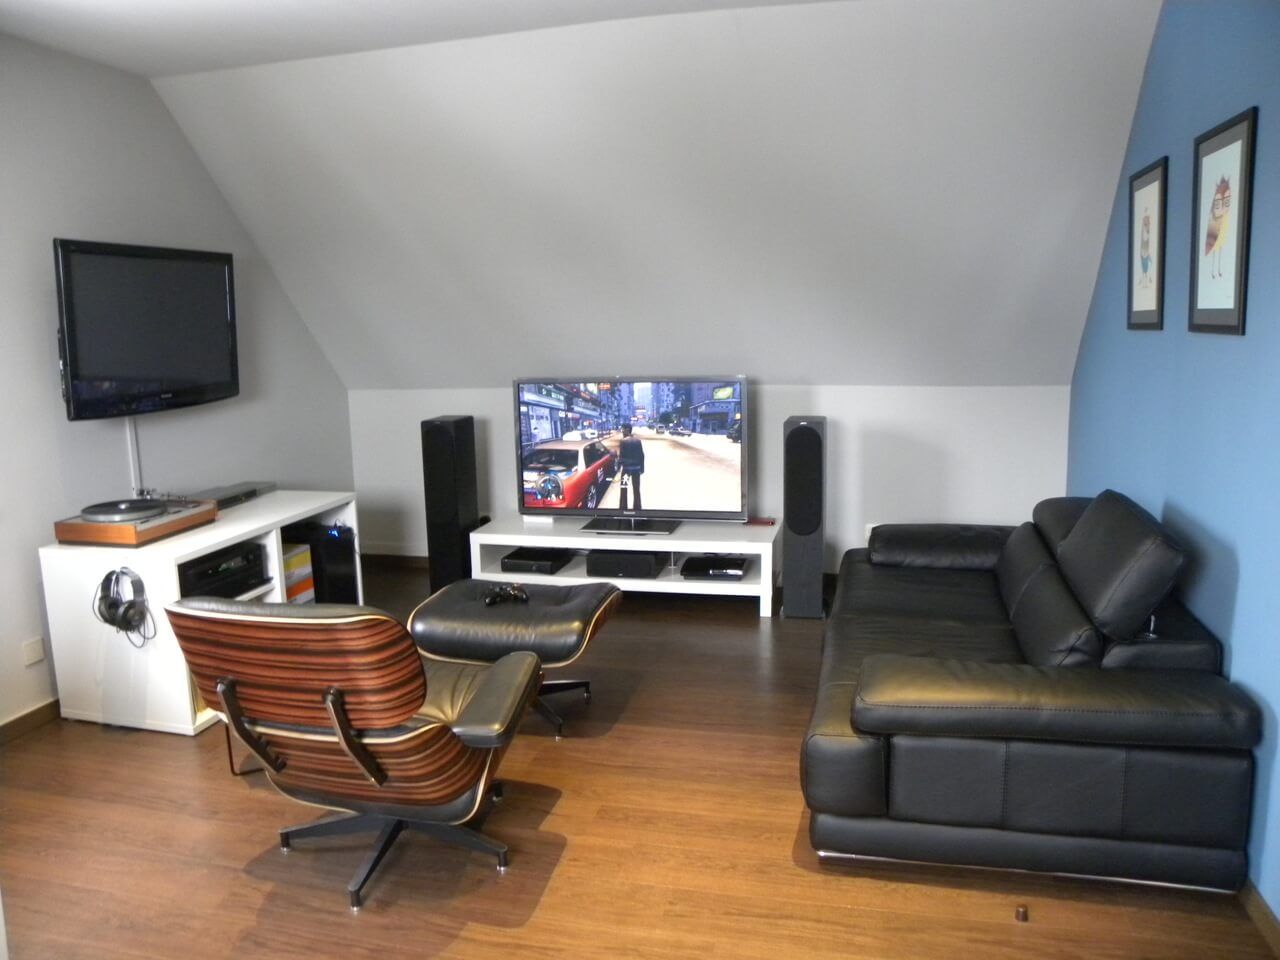 Because of this, you might have diffic. 50+ Best Setup of Video Game Room Ideas A Gamer's Guide